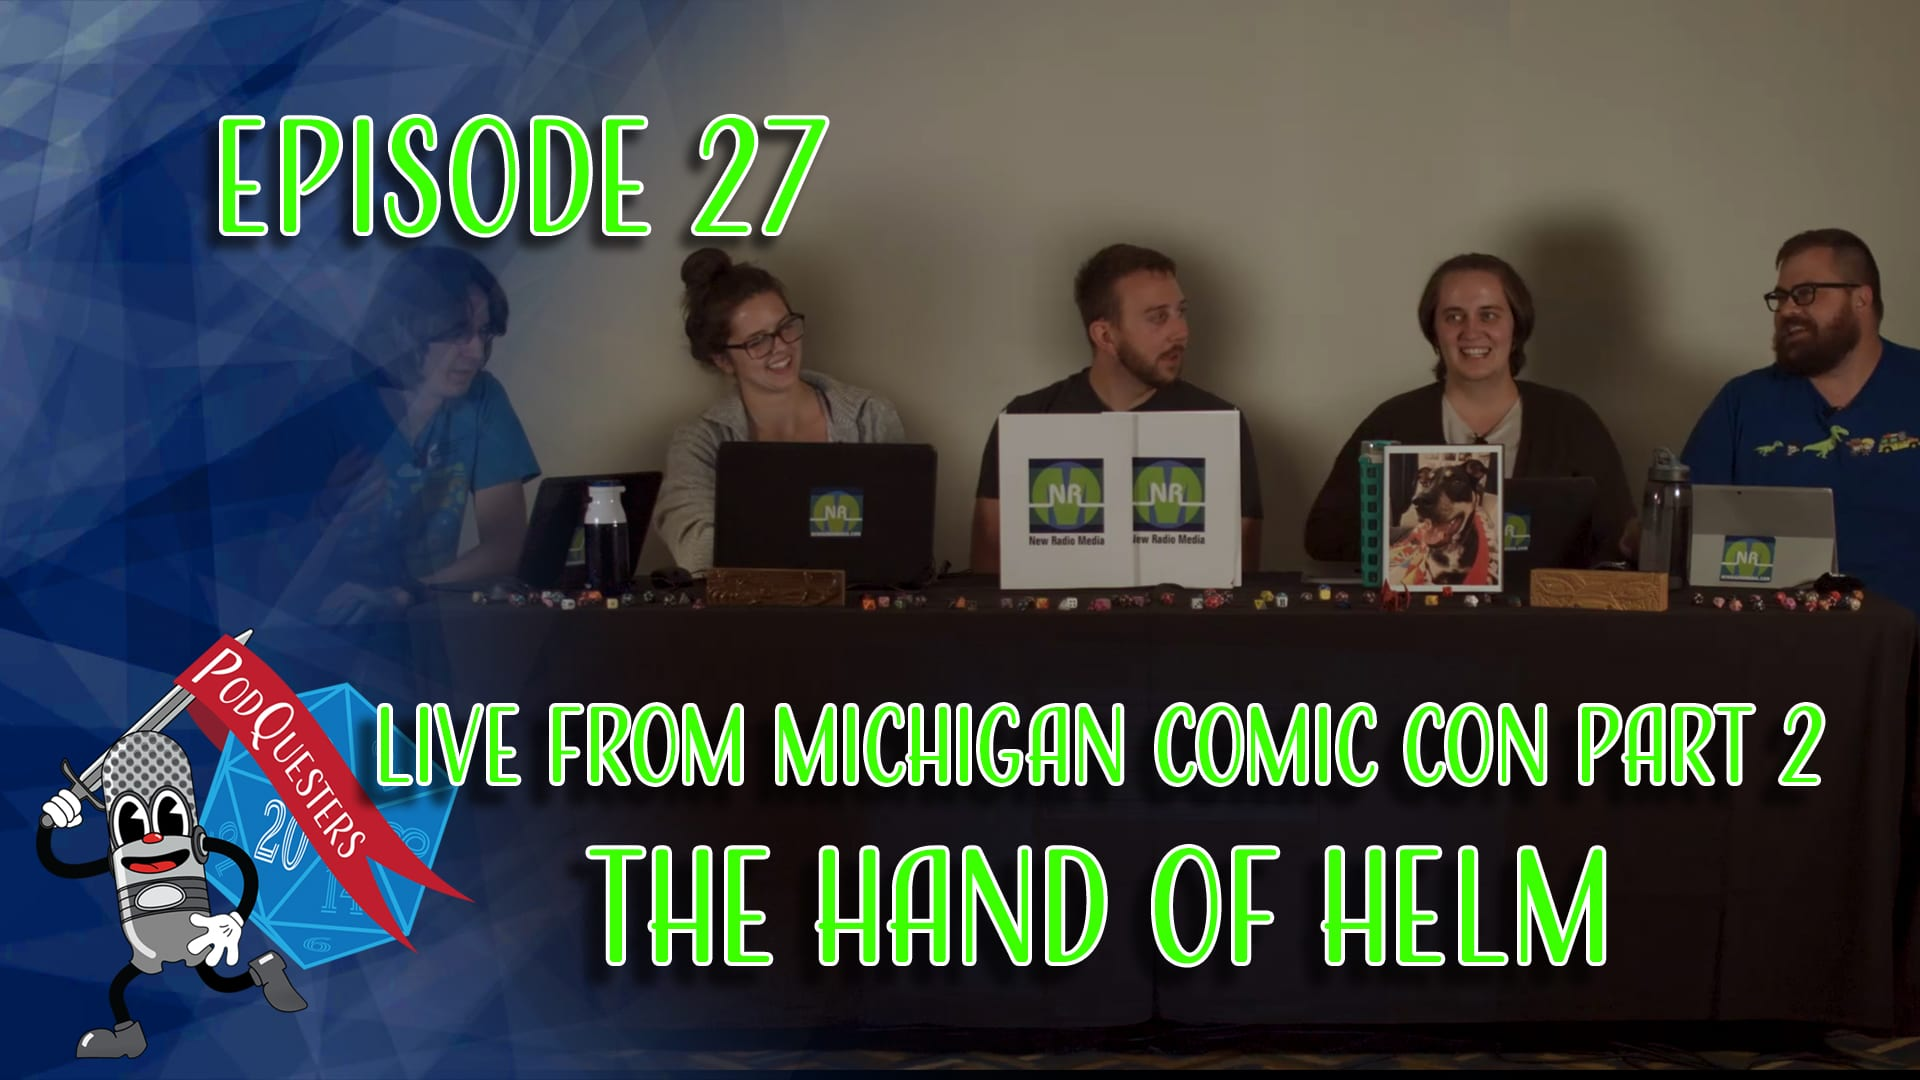 Podquesters - Episode 27: Live from Michigan Comic Con Part 2 - The Hand of Helm